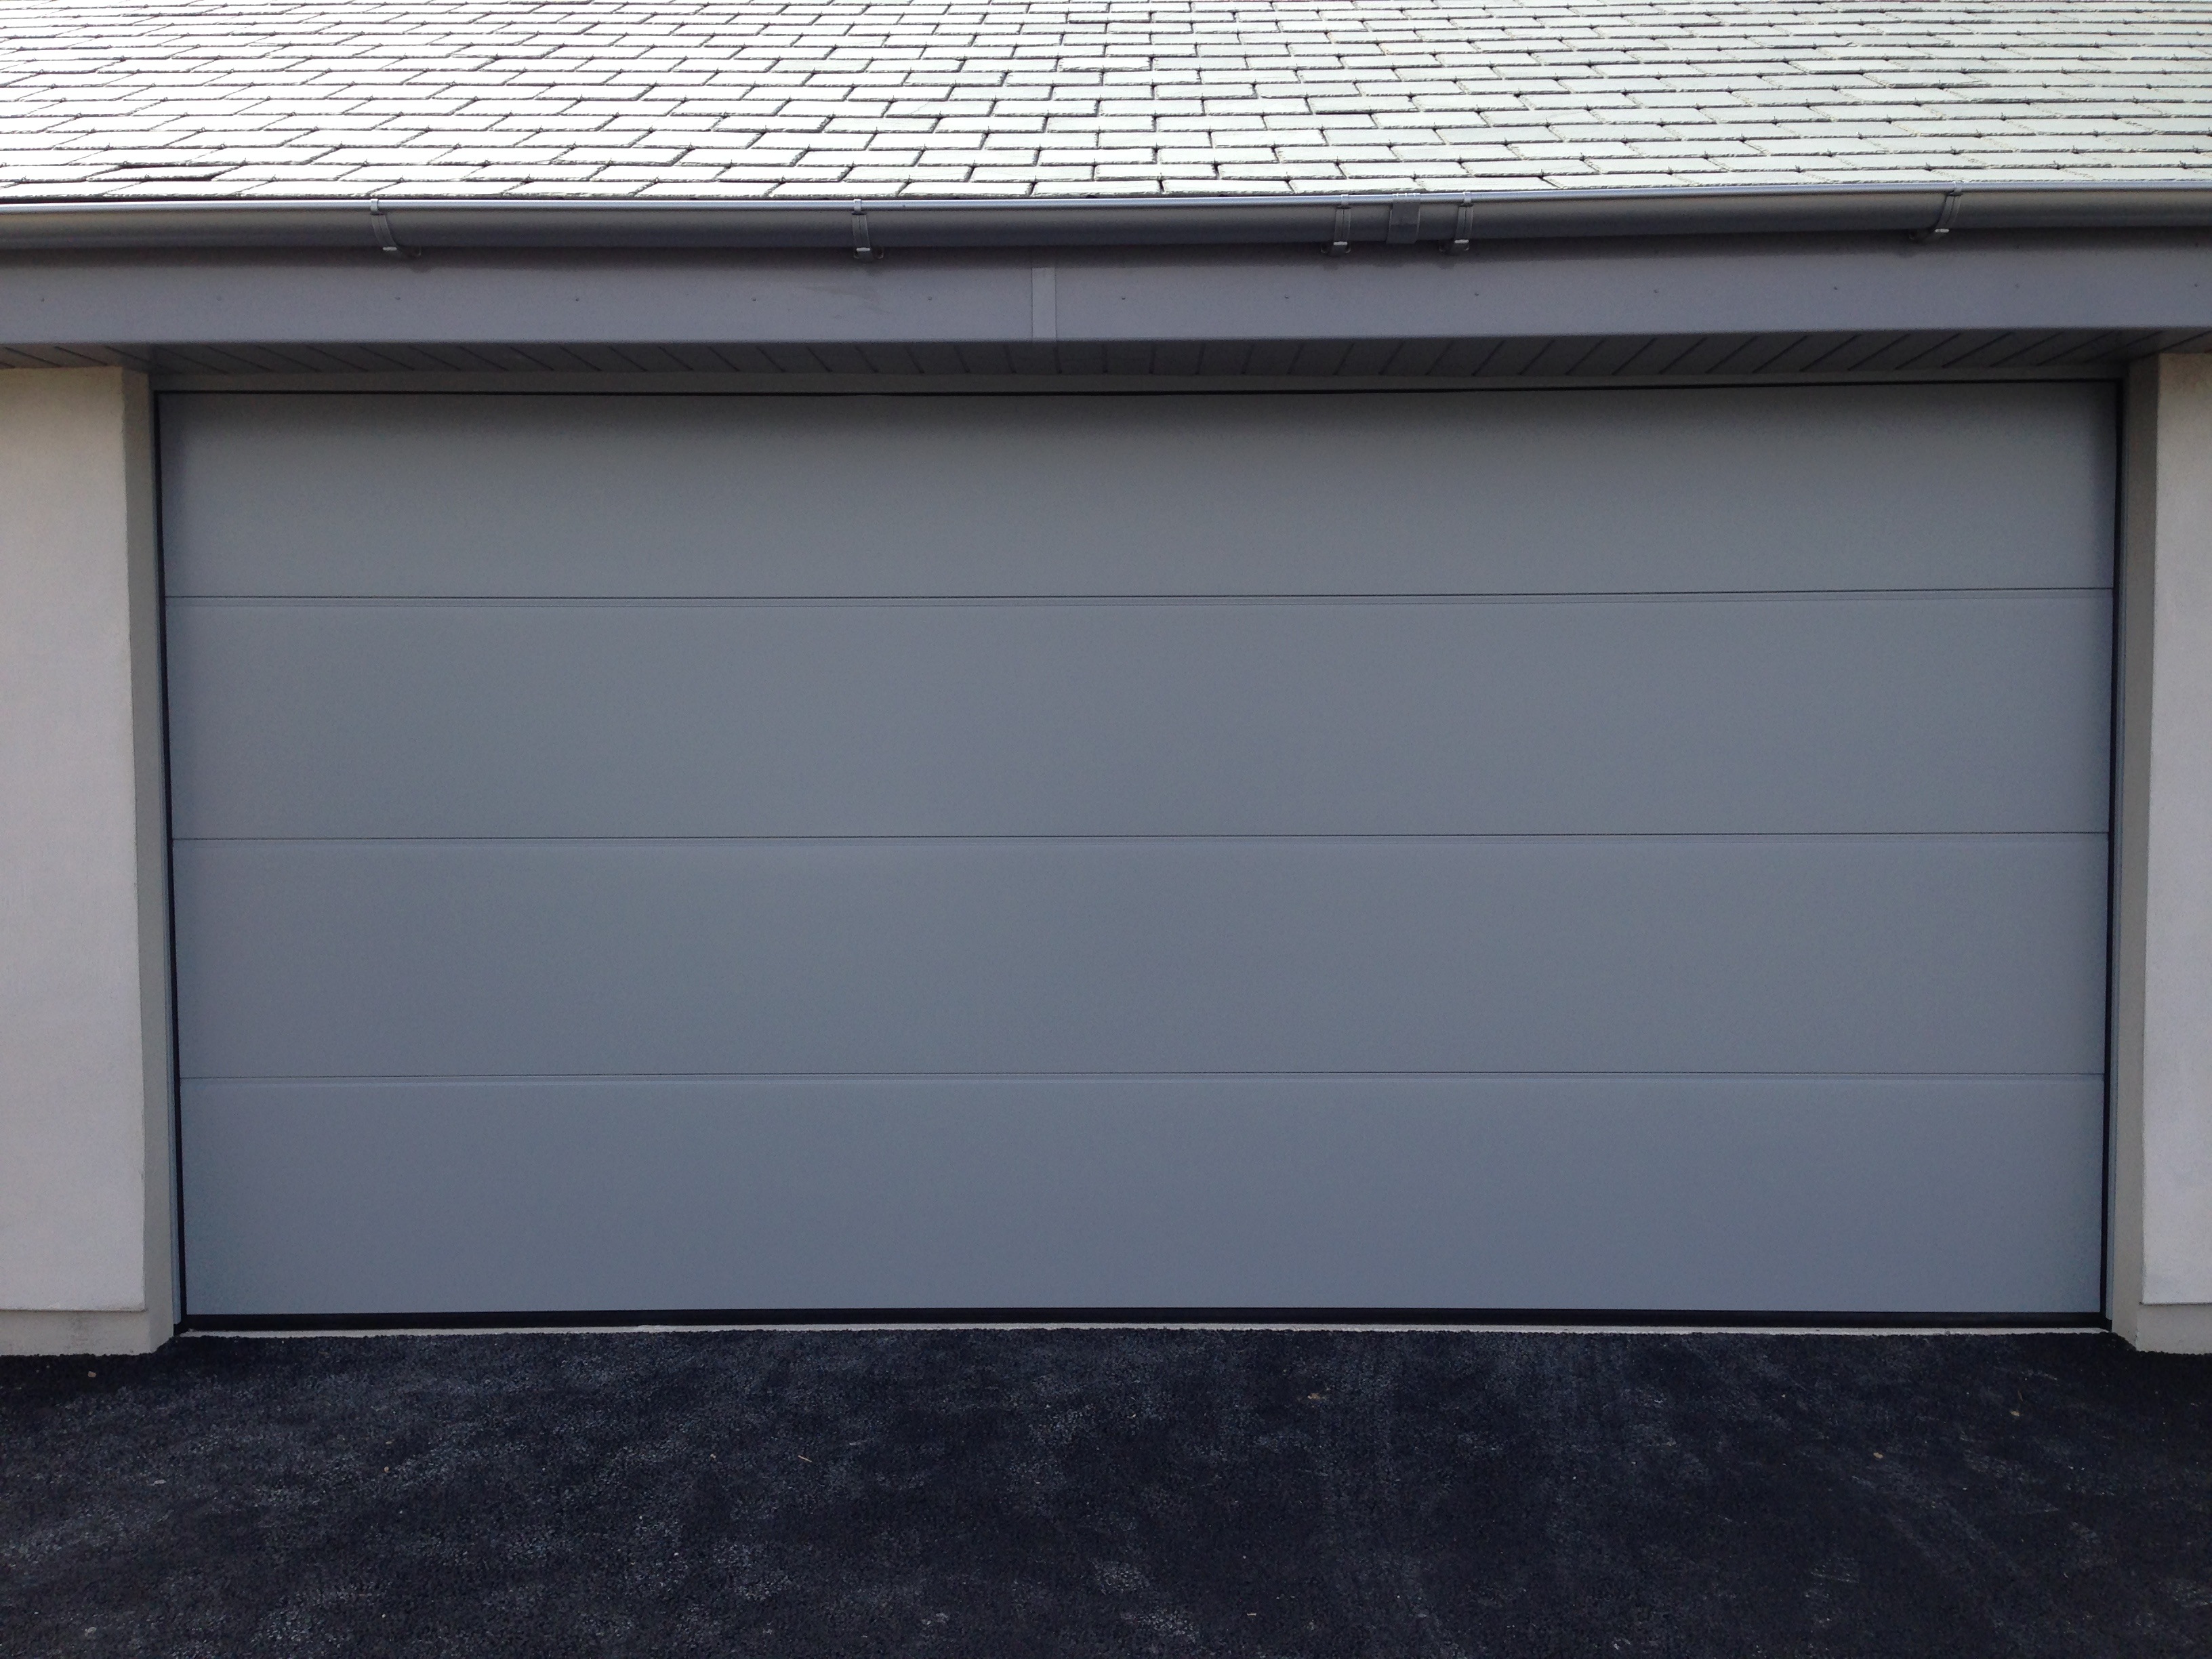 Hormann Garage Doors Meilleures Images Dinspiration